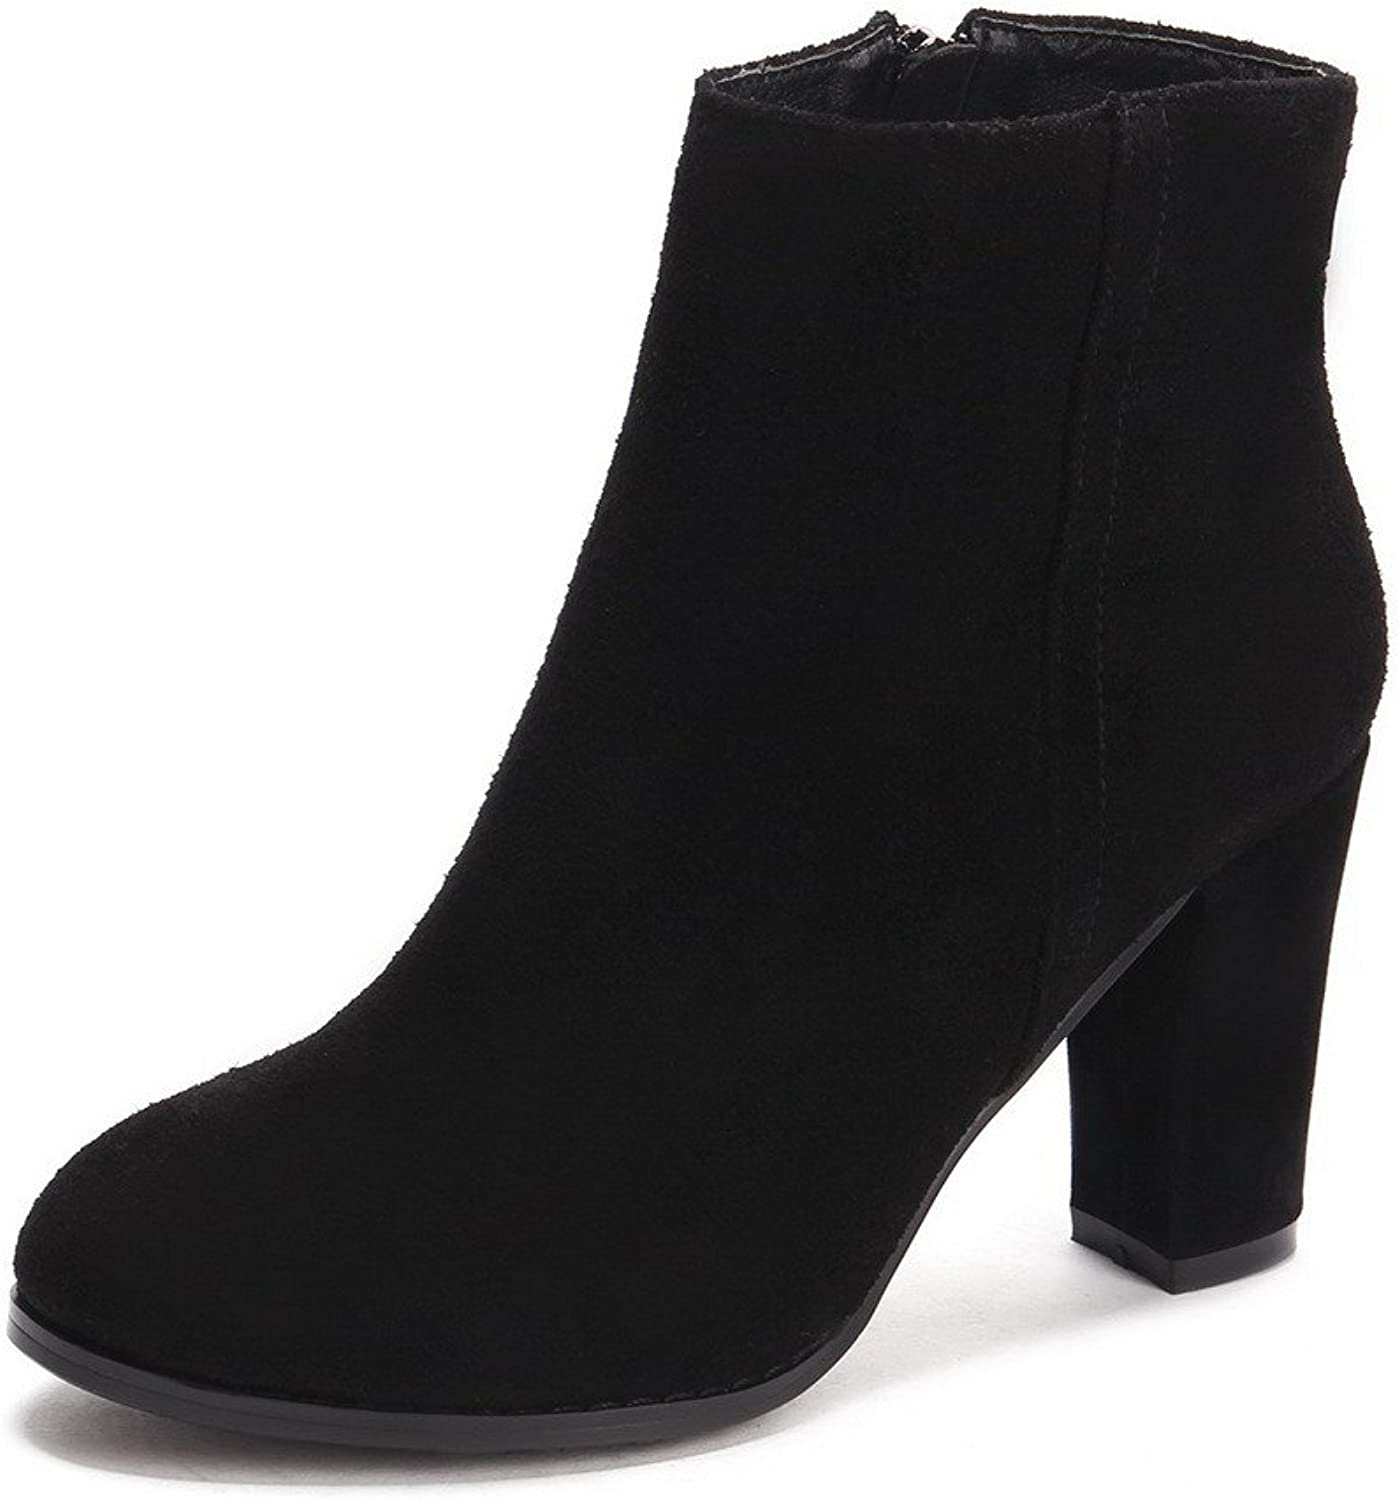 AmoonyFashion Women's Round-Toe Closed-Toe High-Heels Boots with Zippers